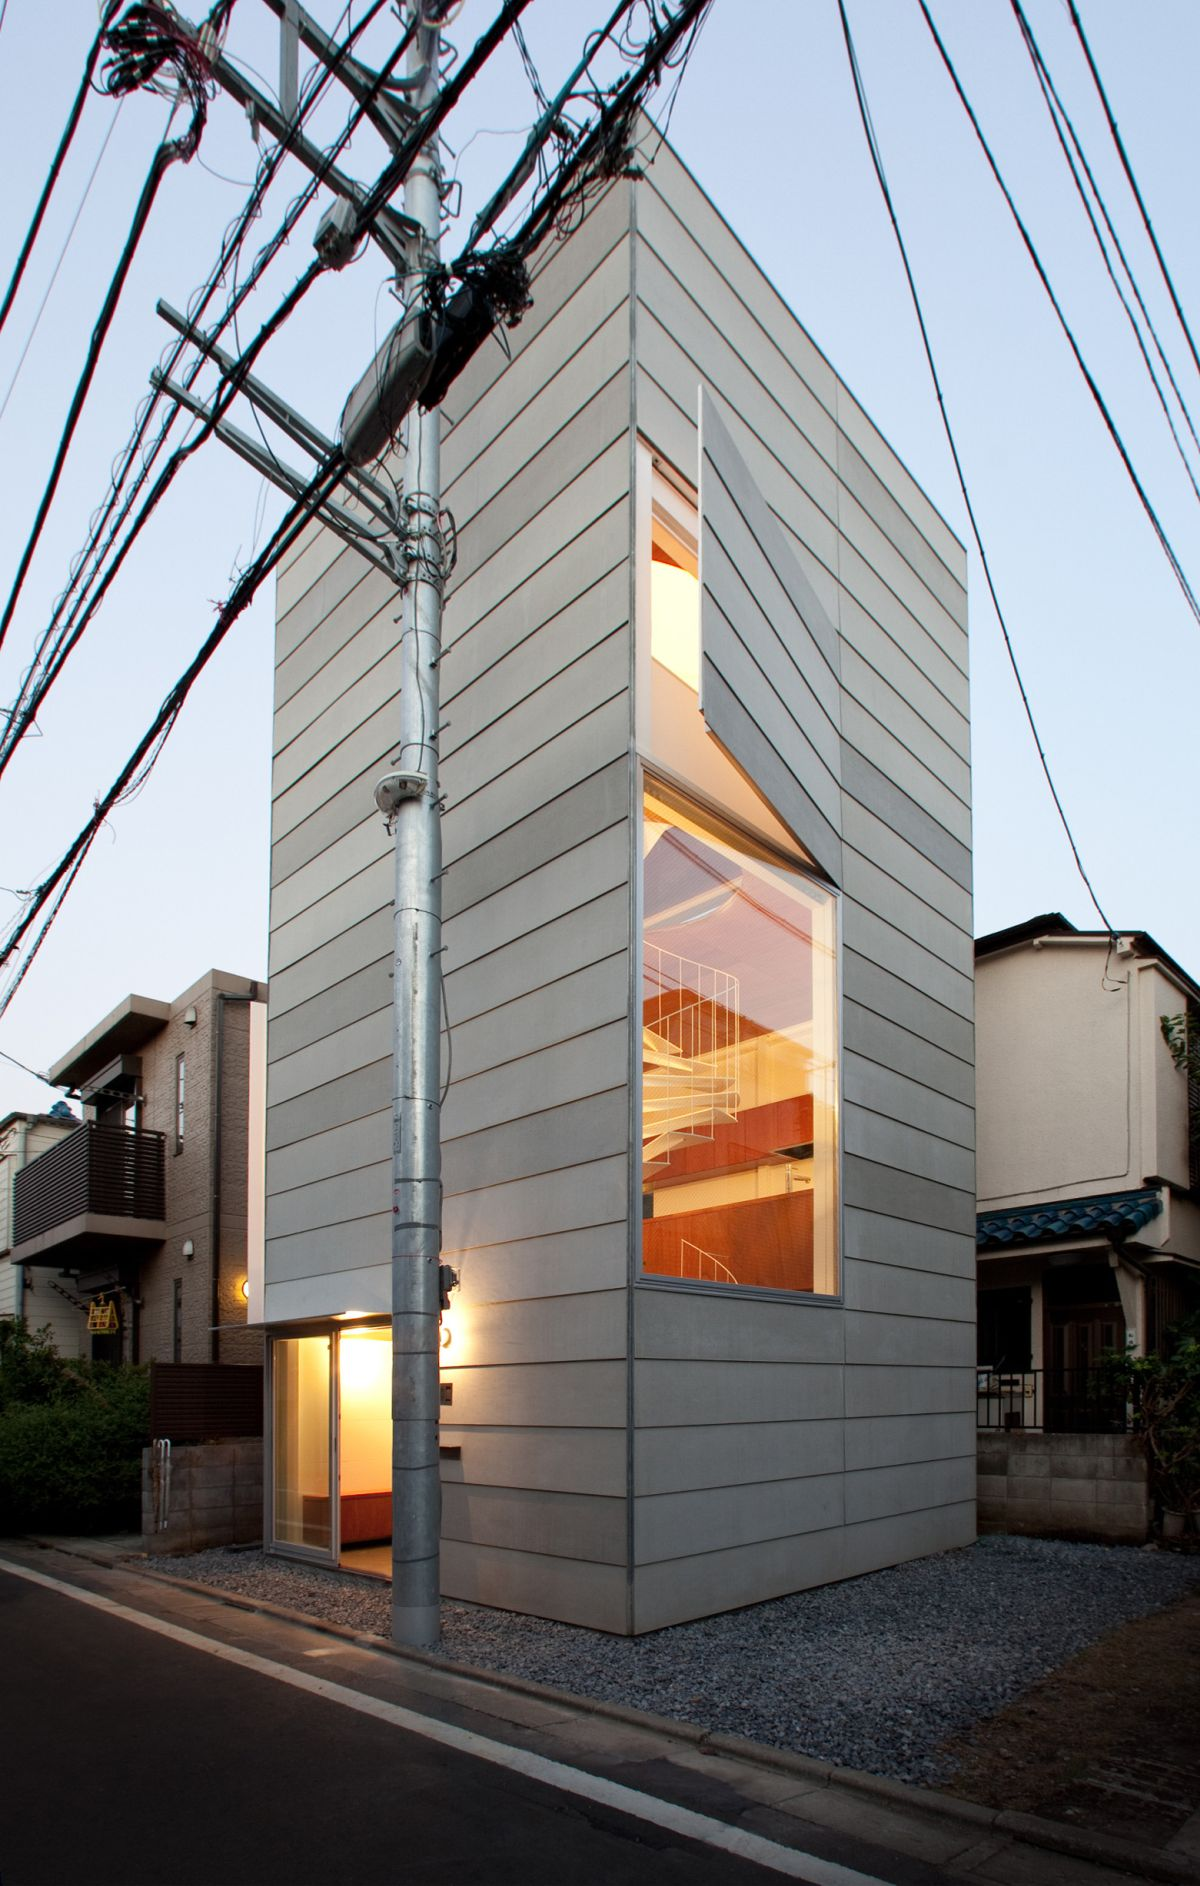 Small tower house in Tokyo